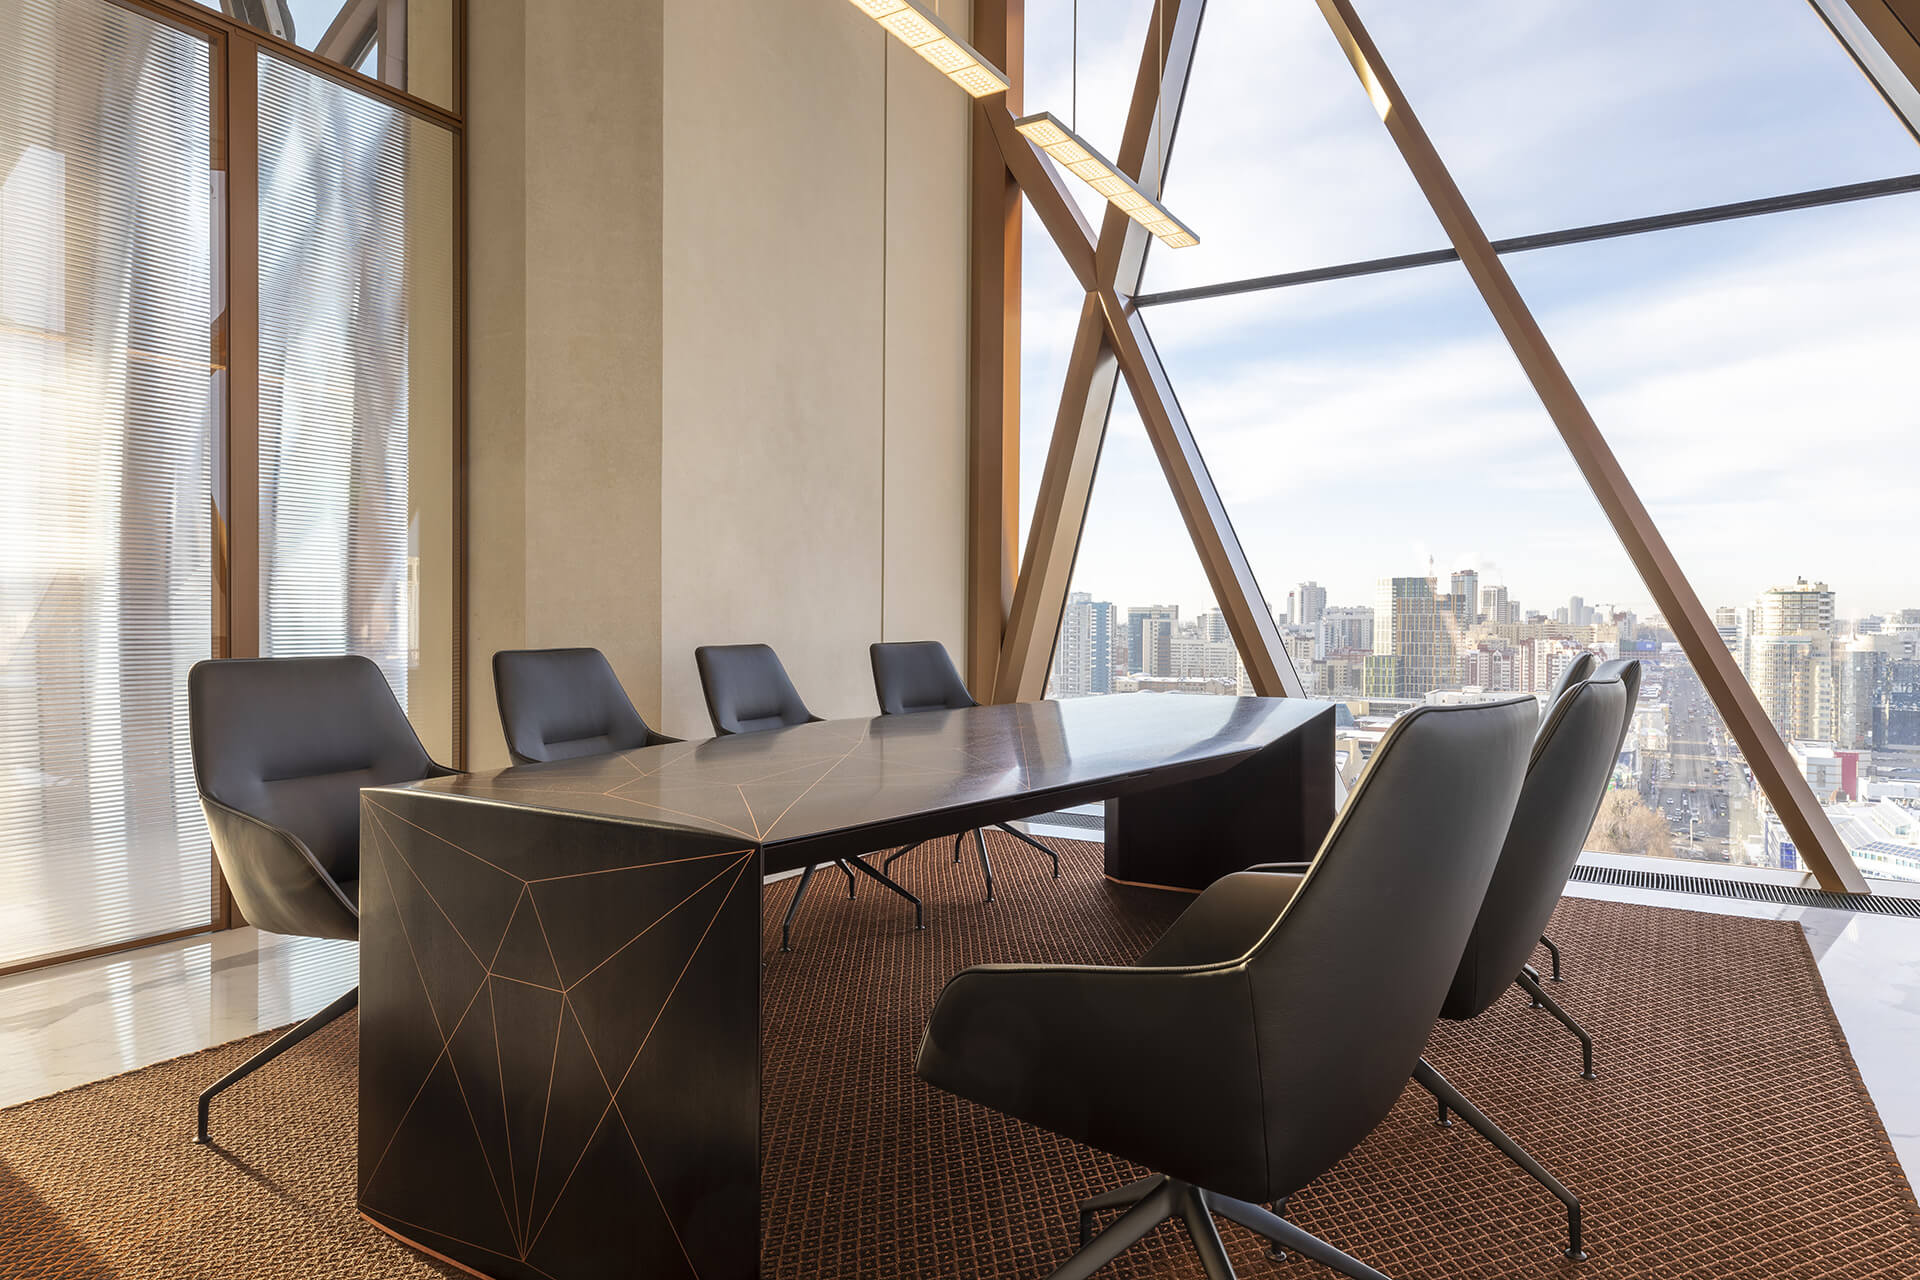 Owner's meeting room | RCC Headquarters by Foster + Partners | STIRworld